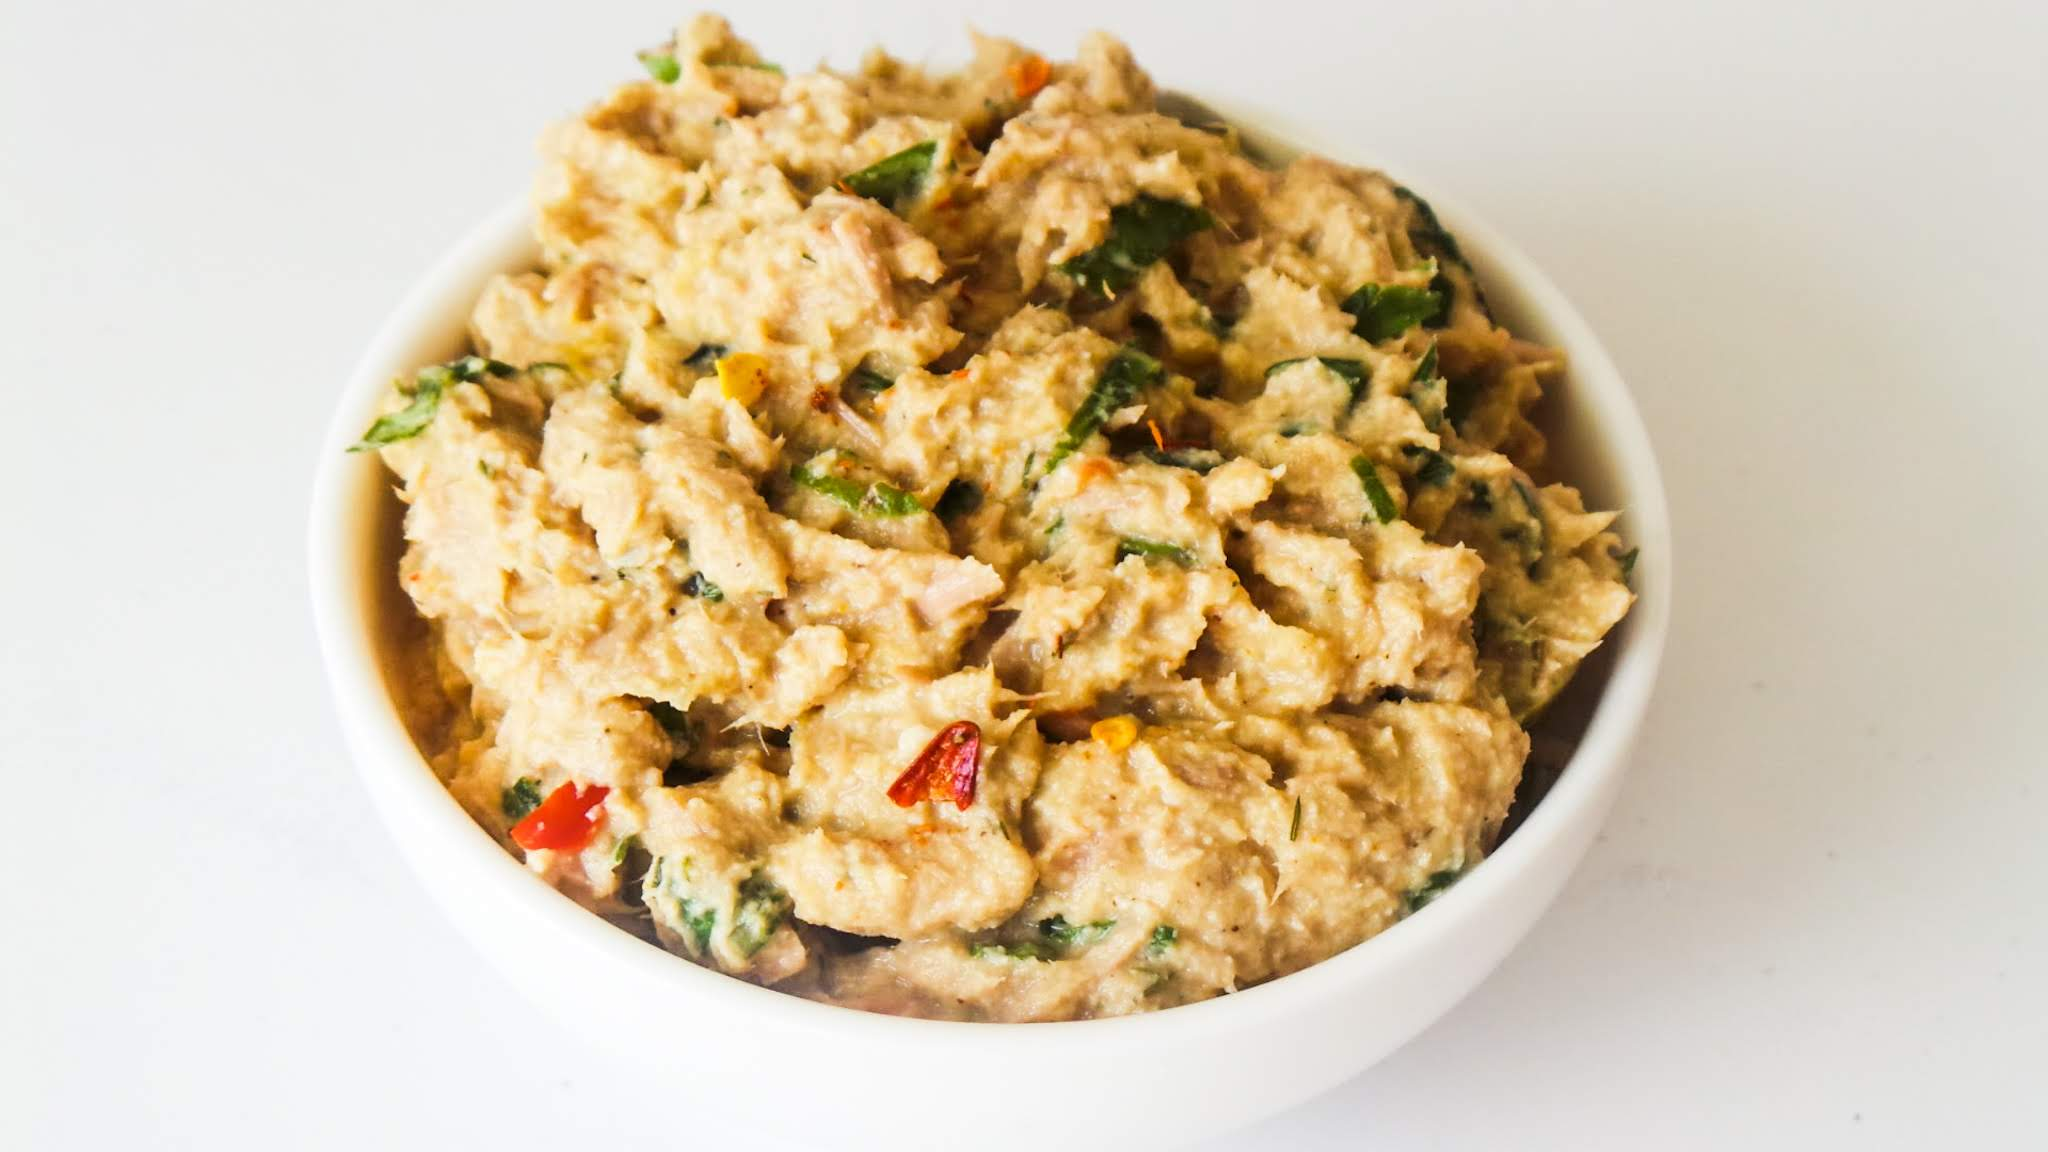 Easy paleo tuna salad recipe! This healthy tuna salad recipe is easy to make and great for a snack or healthy lunch!